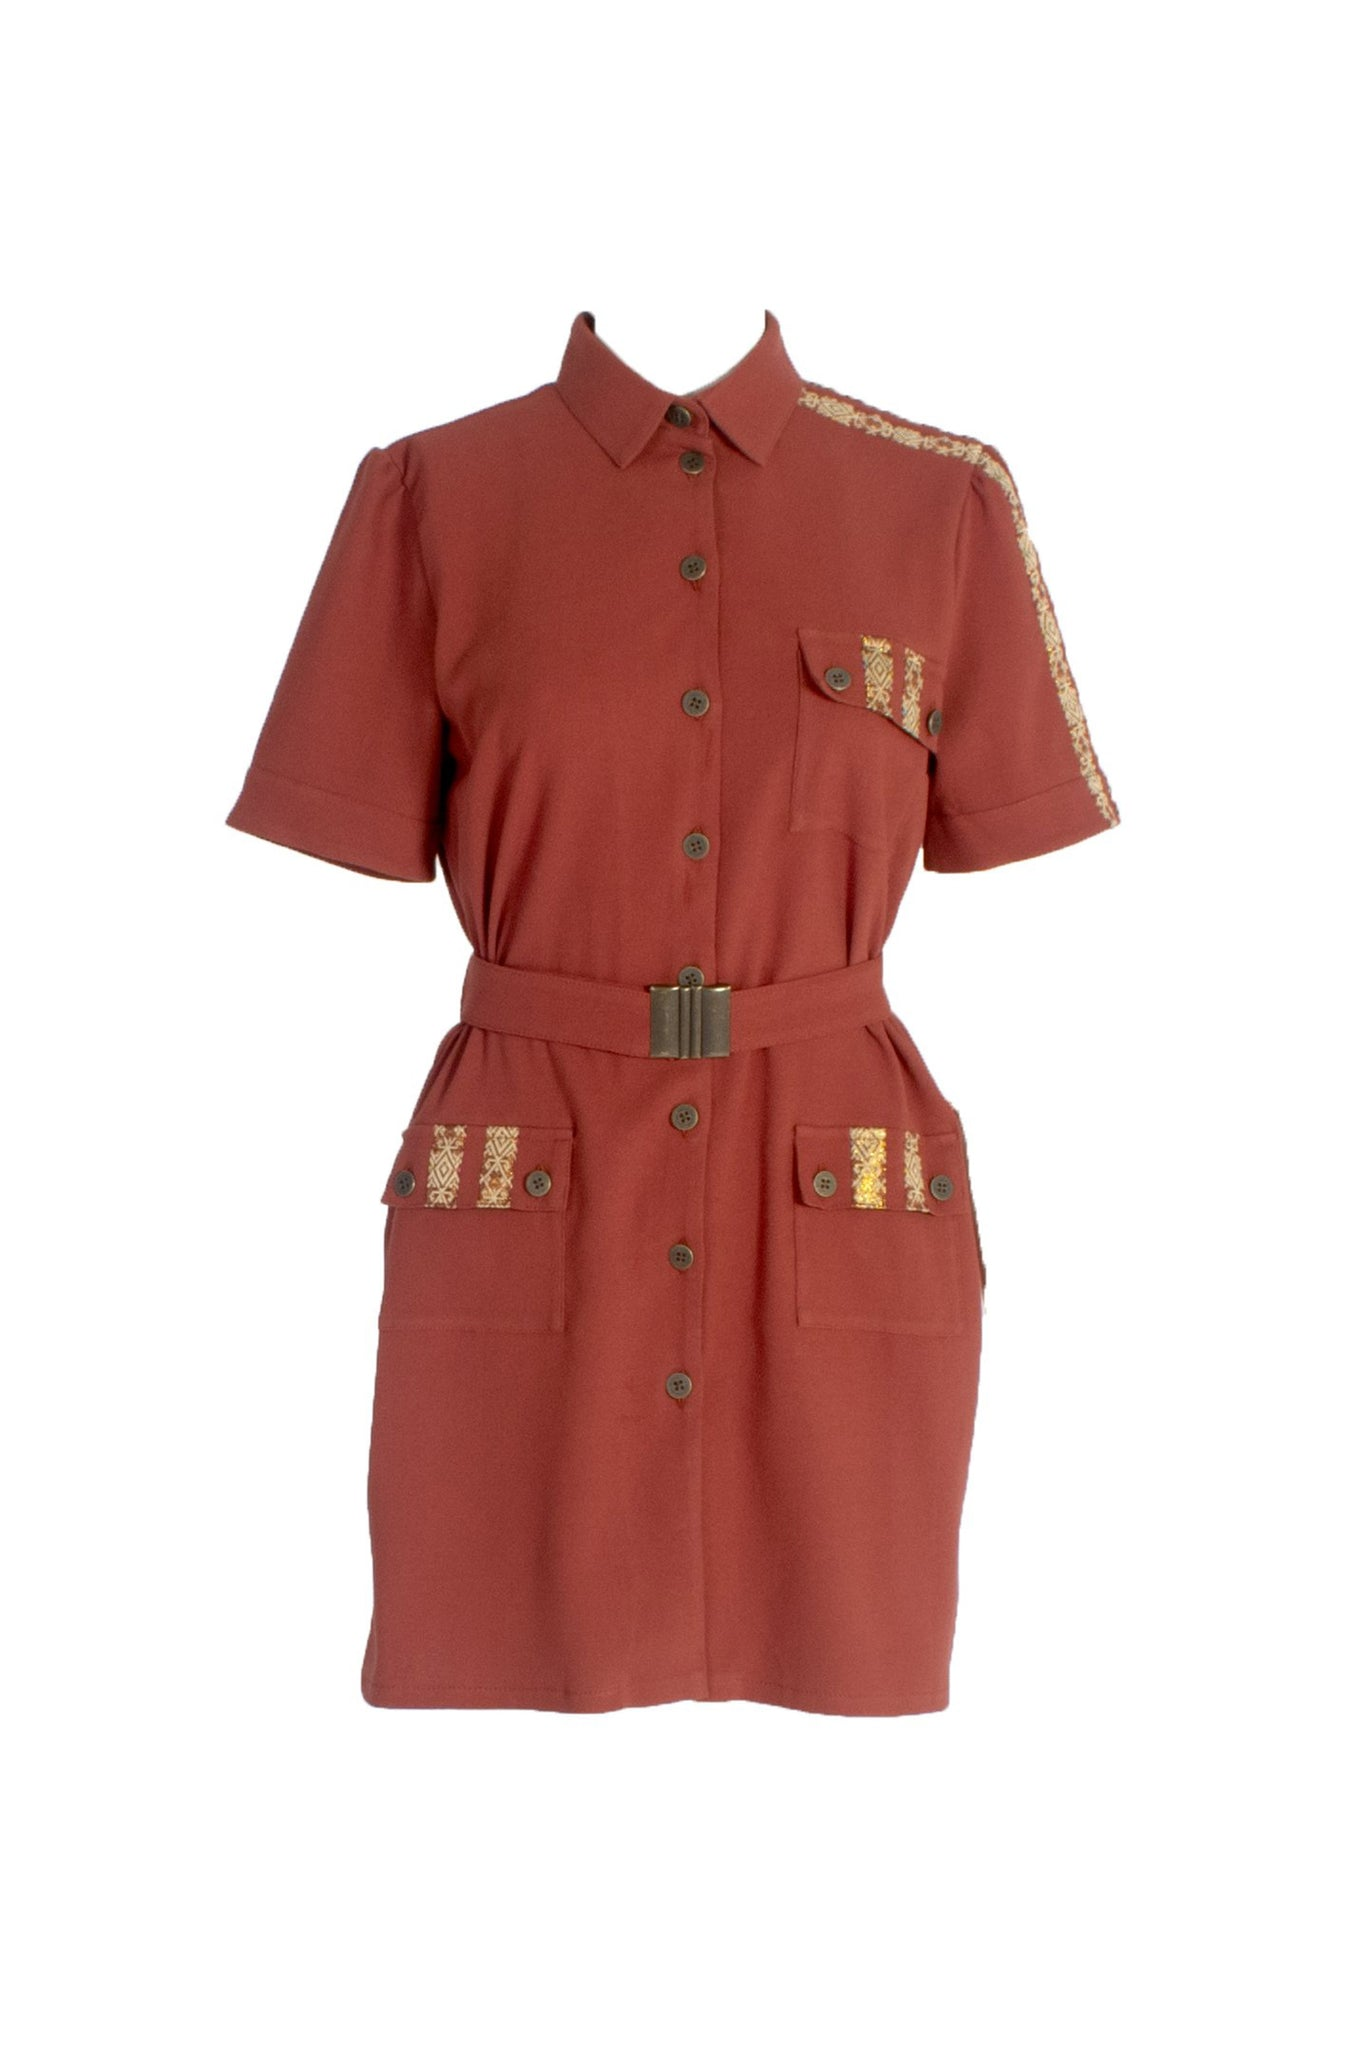 Short Sleeve Wool Button Up Shirt Dress with Chest Pockets Burgundy